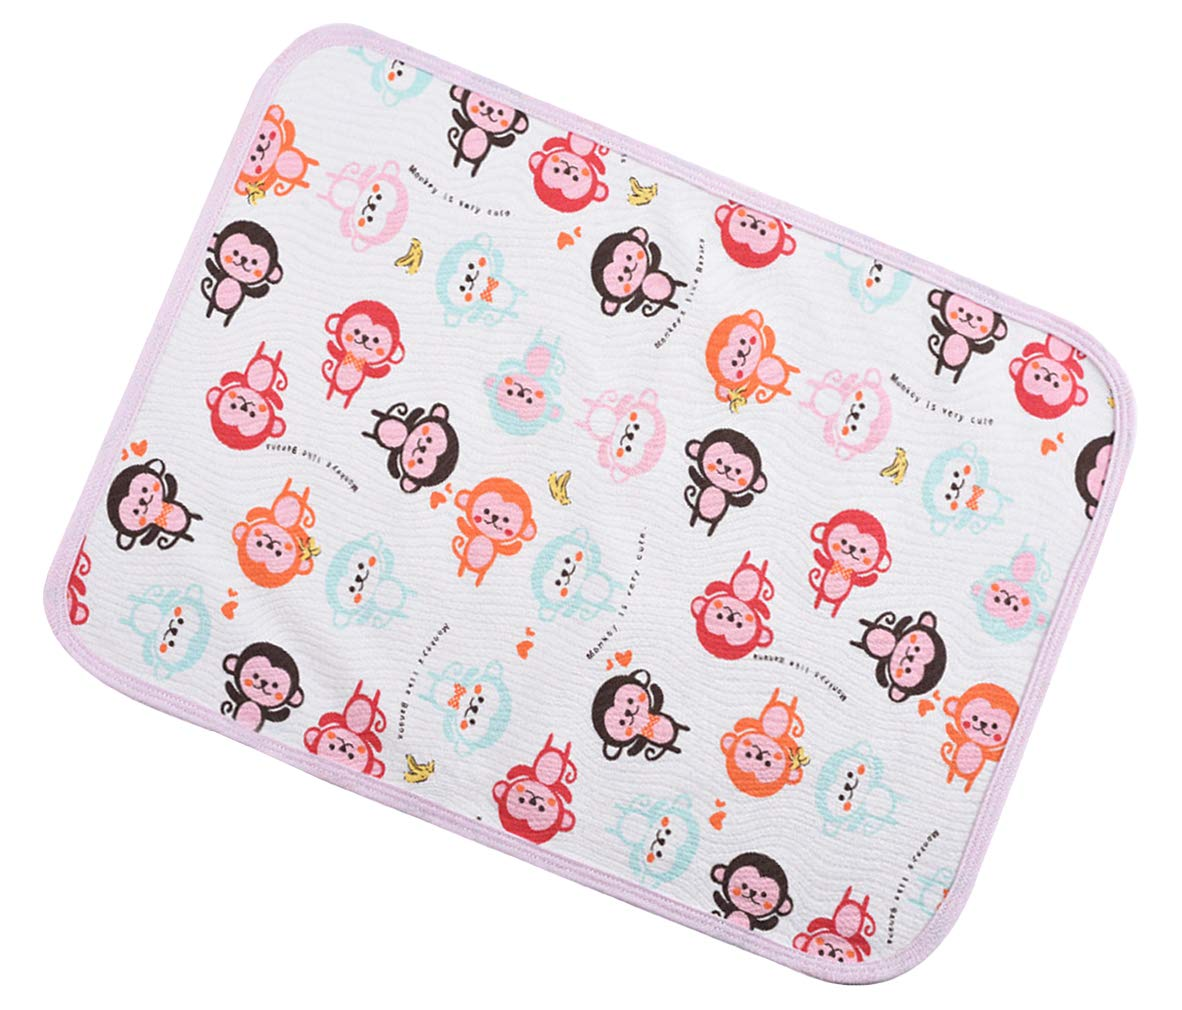 La Vogue Printed Baby Urine mat Waterproof Diaper Changing Pad Bed Wetting Pads for Infant(39.431.5in)